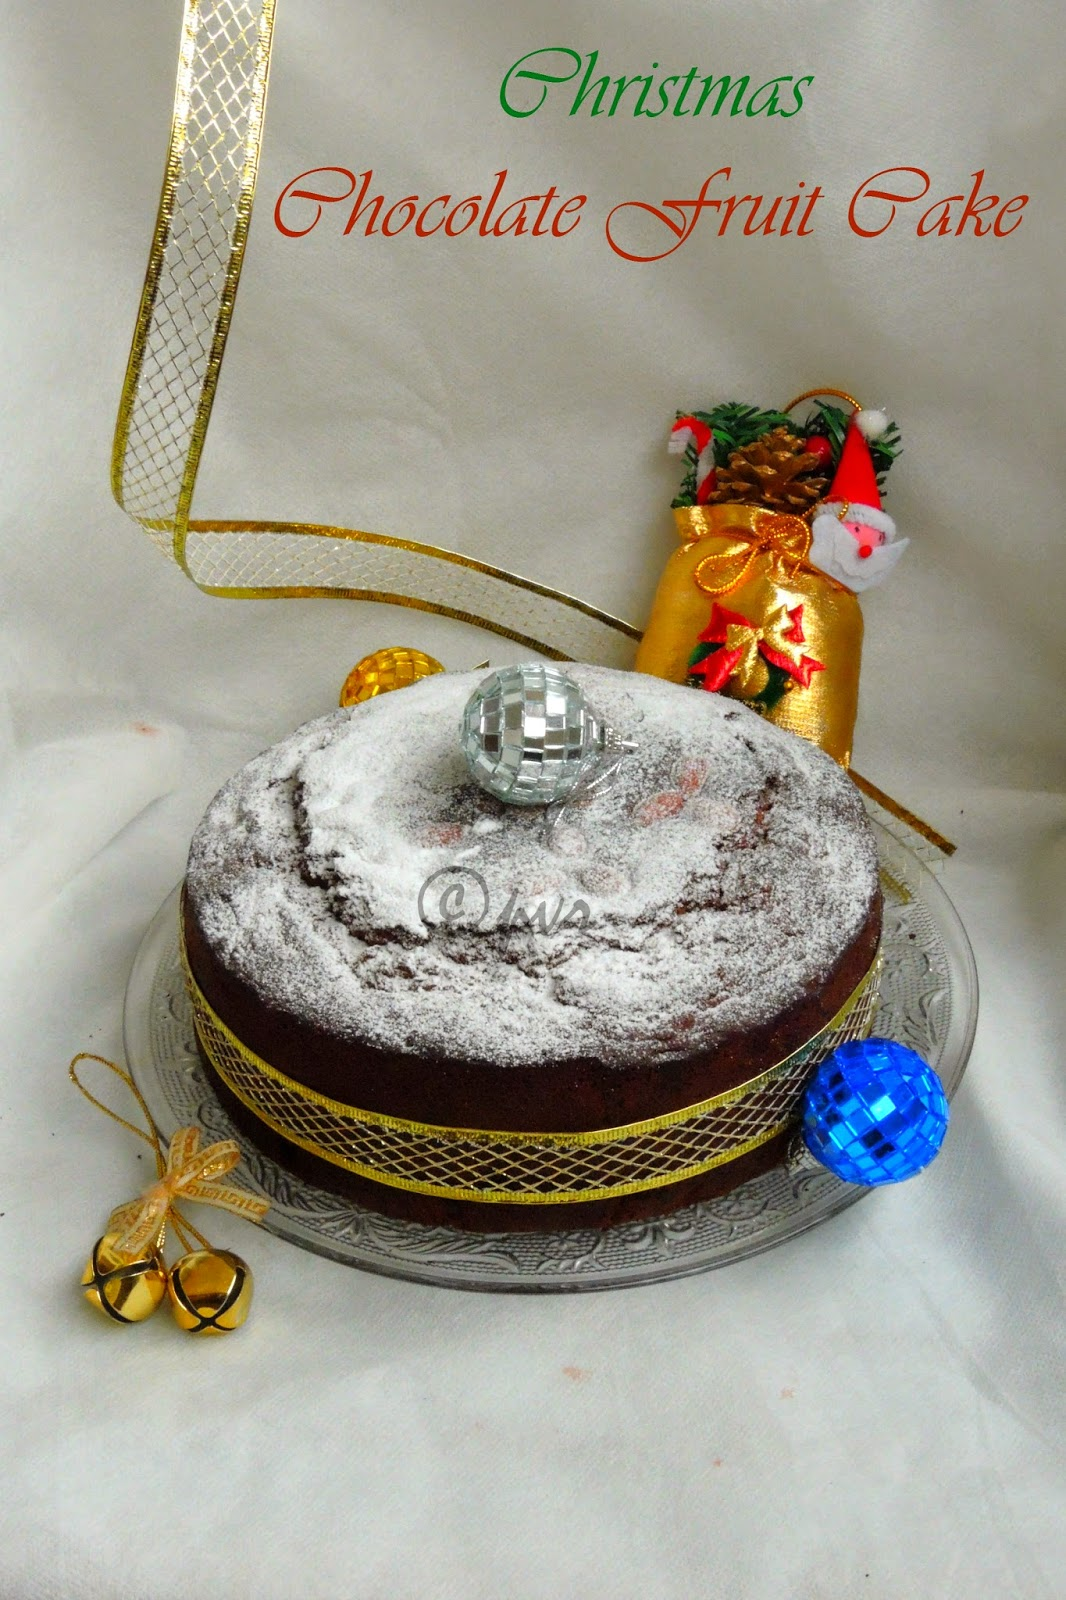 Rich Christmas Chocolate fruit cake, Christmas Chocolate fruit cake